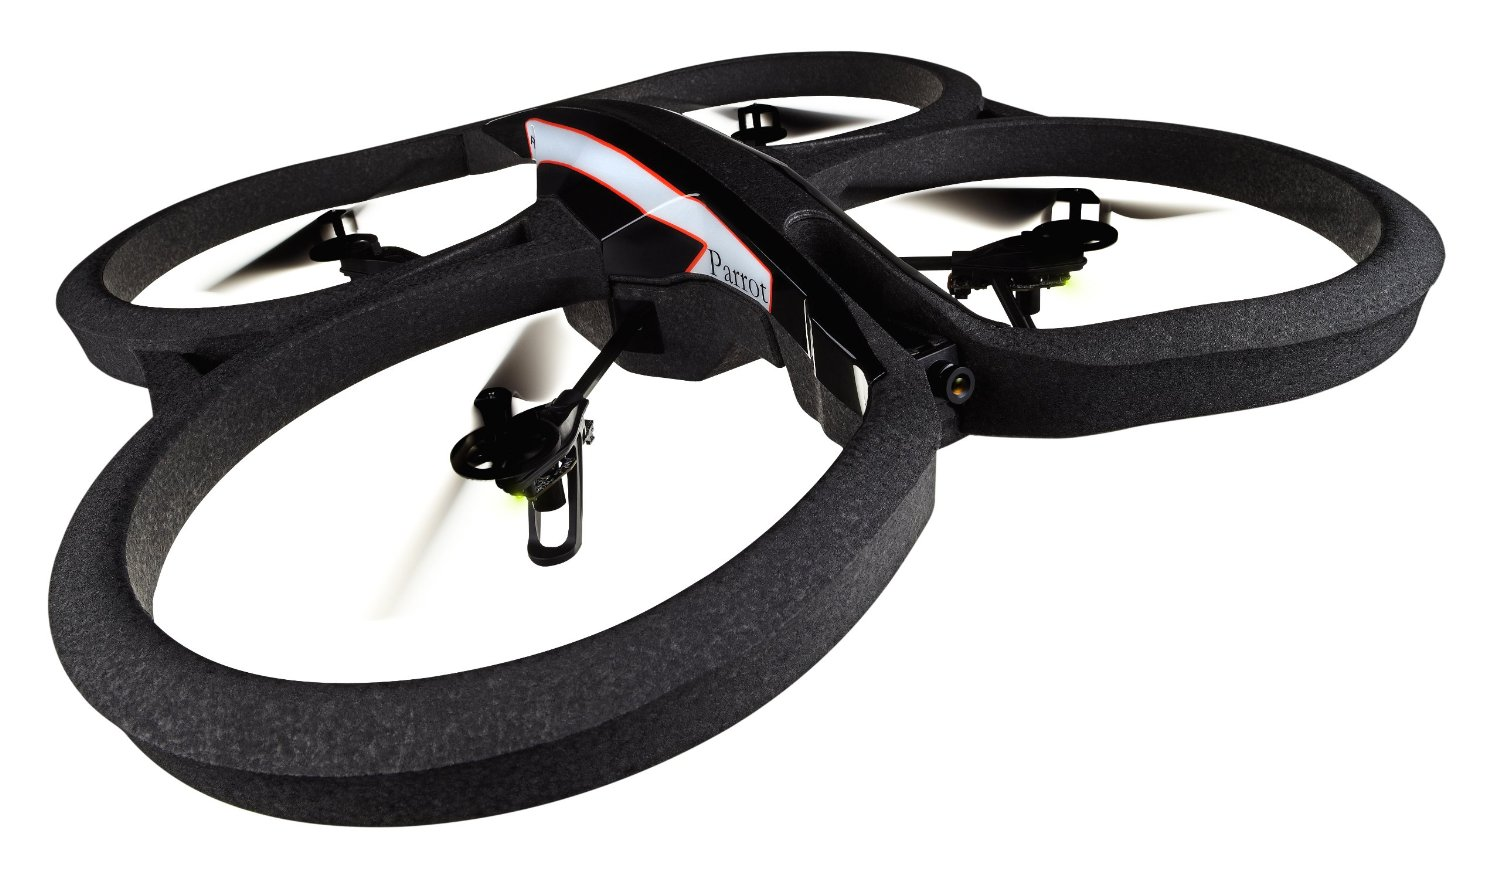 Parrot Quadcopter